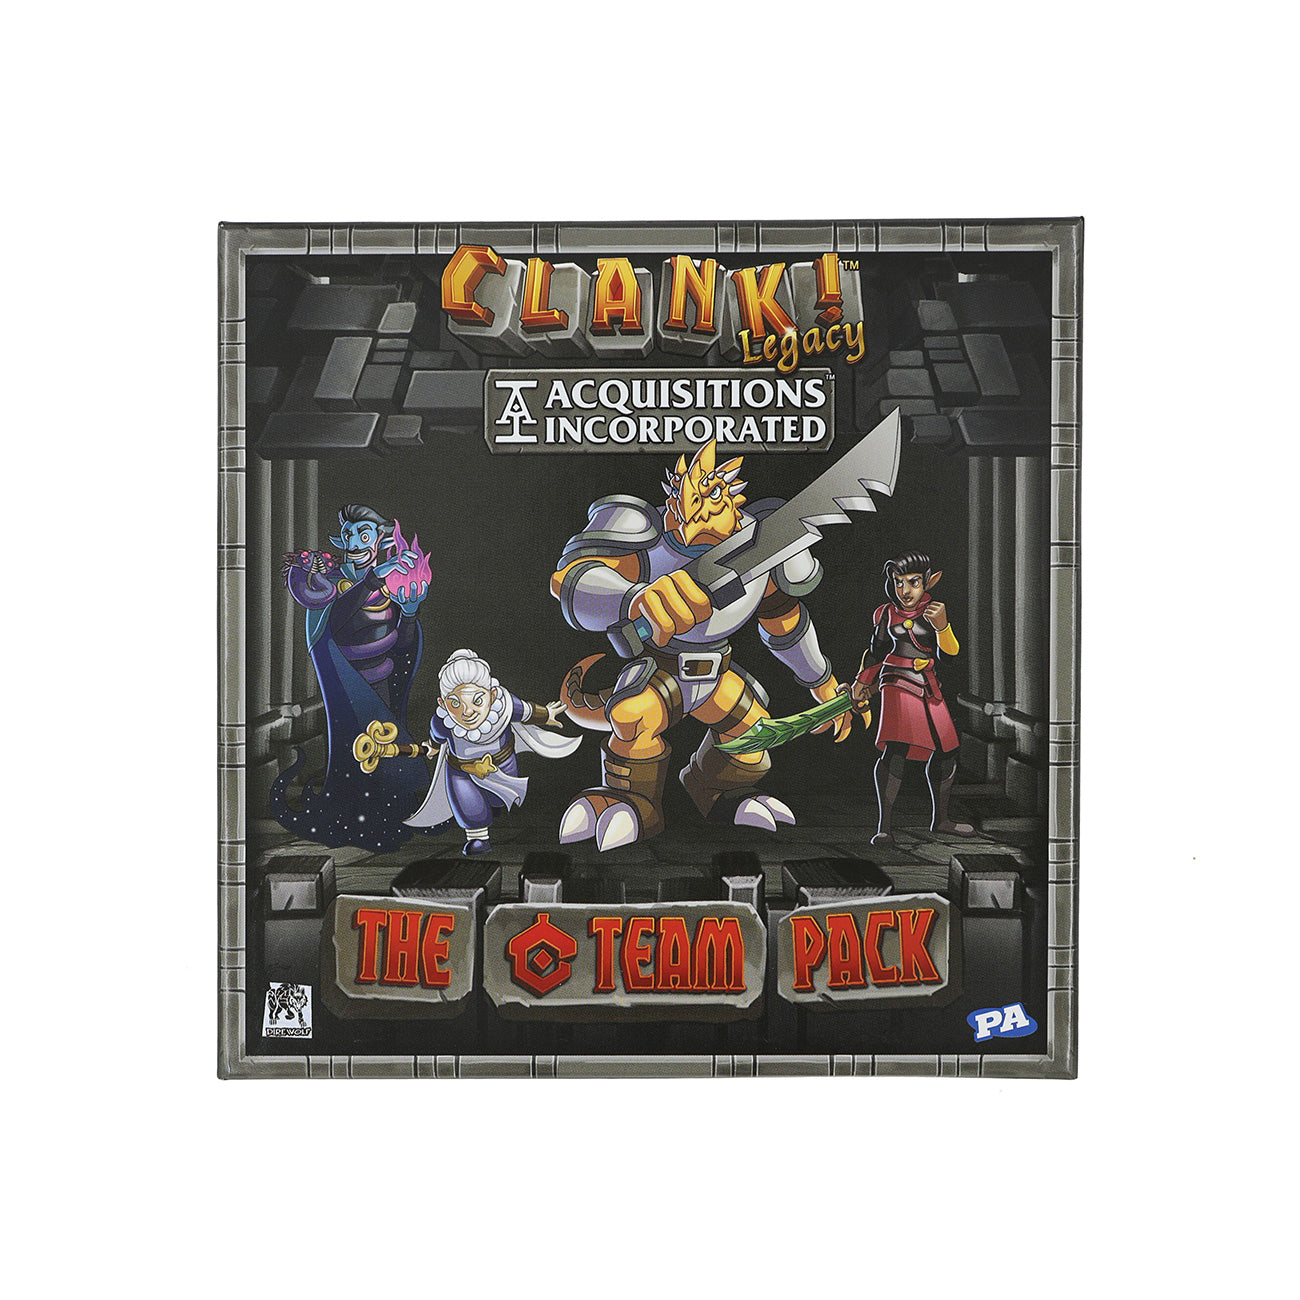 Clank! Legacy: Acquisitions Incorporated - C Team Pack